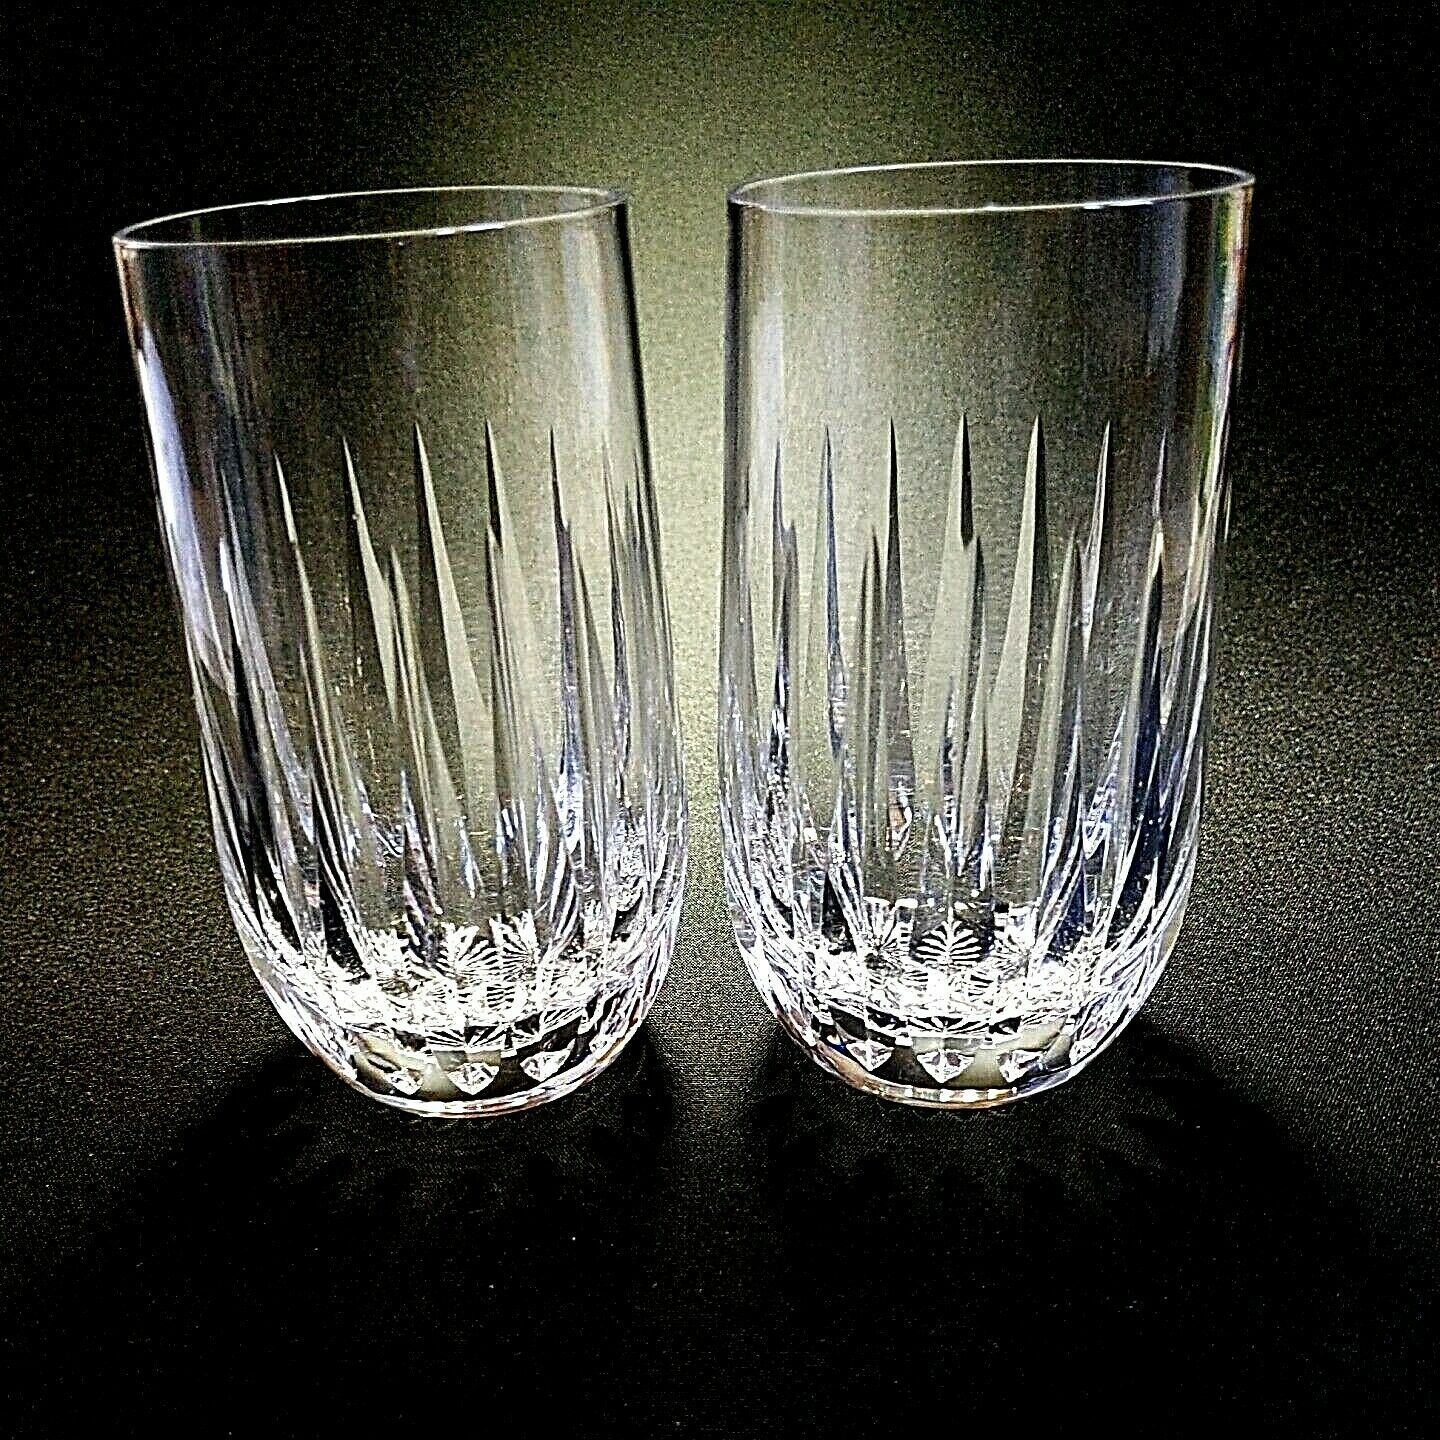 Primary image for 2 (Two) VINTAGE STUART CLARIDGE Cut Lead Crystal Highballs DISCONTINUED- Signed